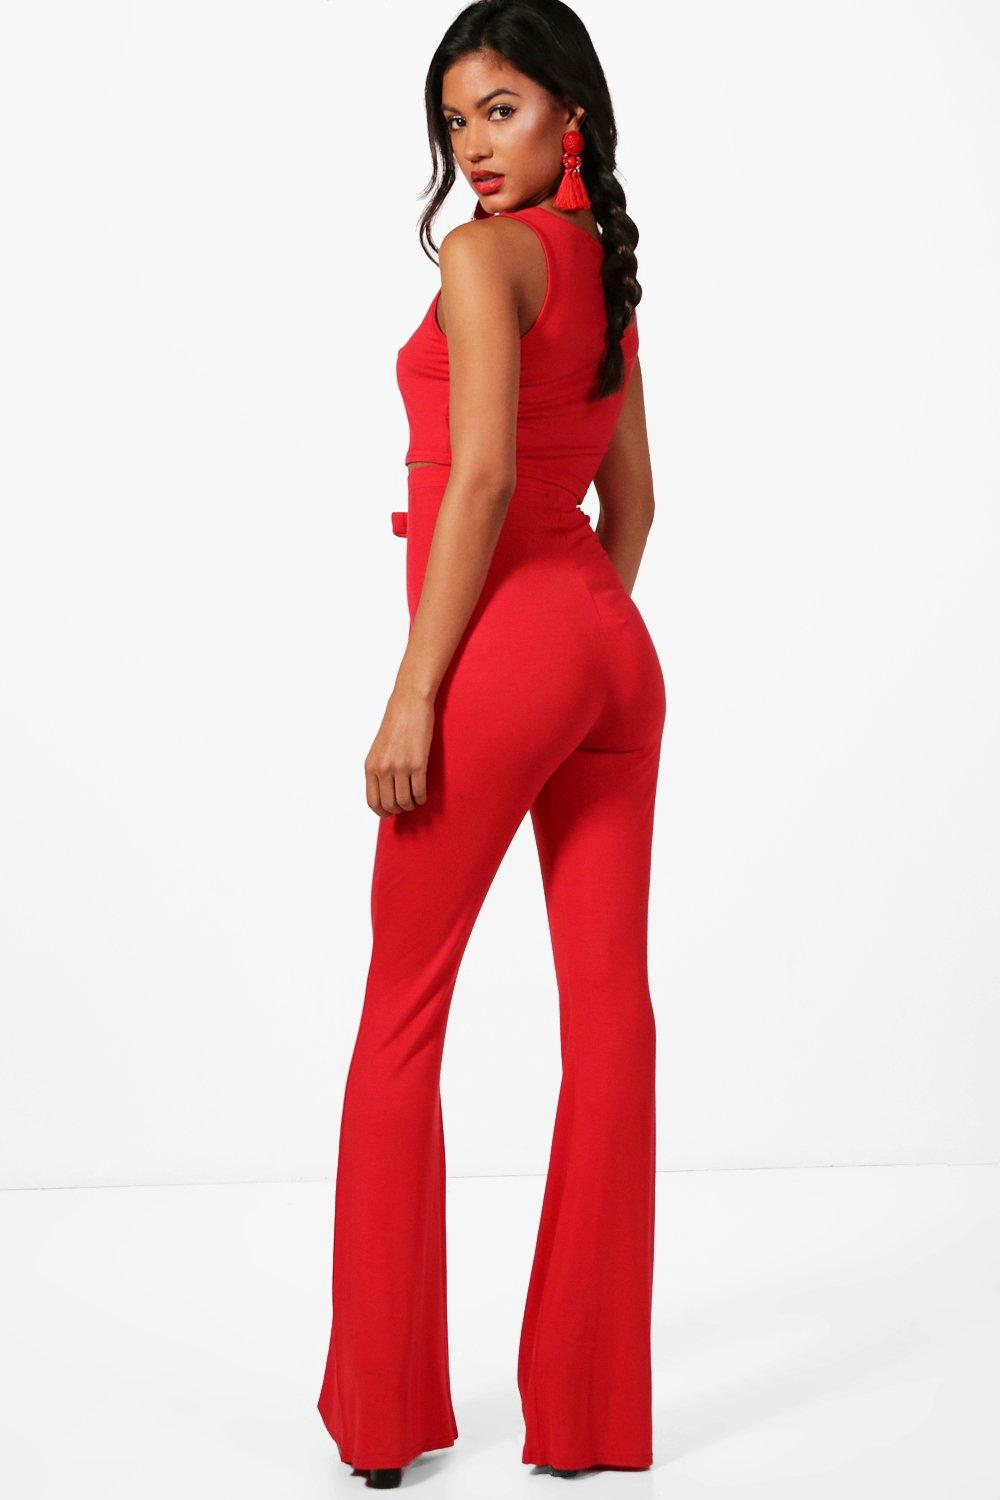 Trouser Flared Bralet Basic Co red ord and 1ExtEwP7qH